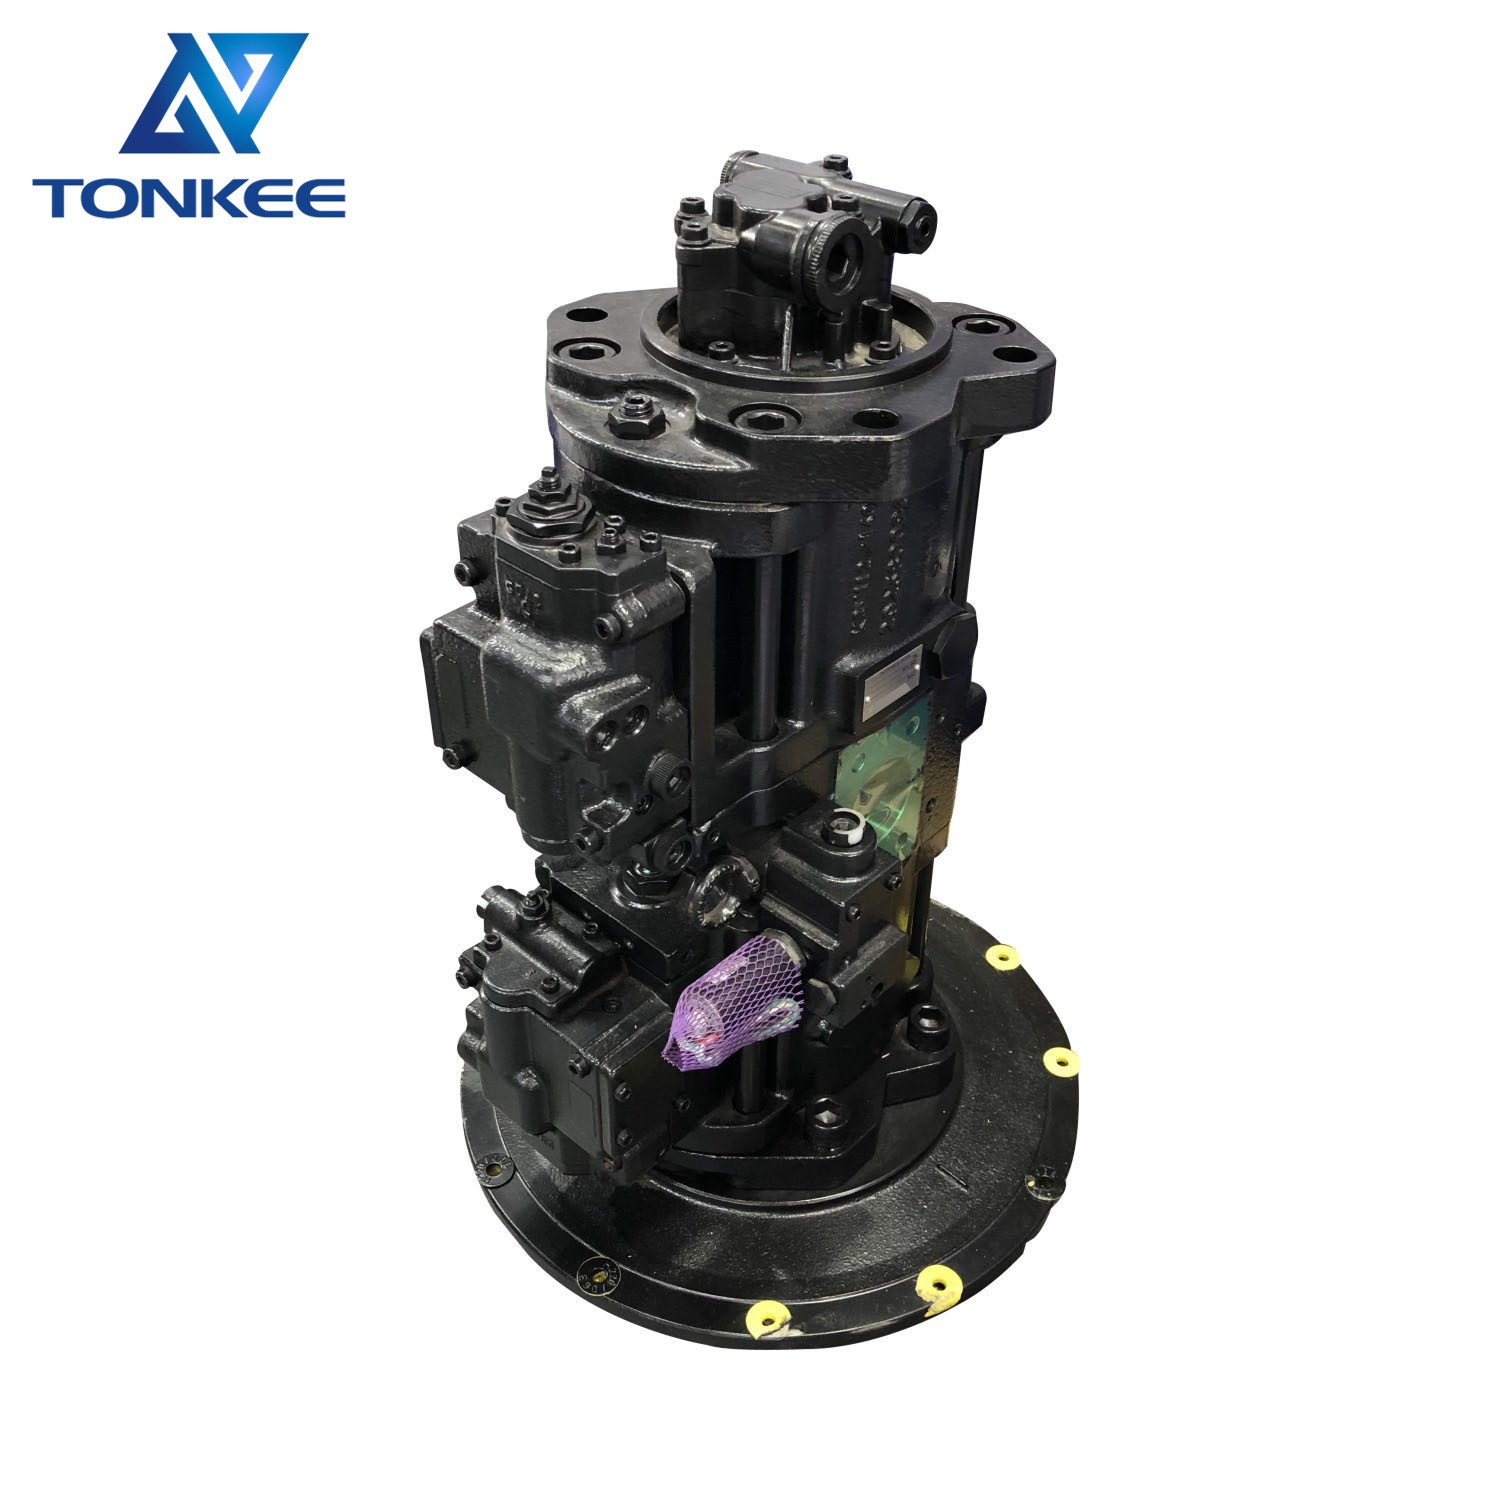 21513686 K3V112DTP-1M9R-9CB9+2F hydraulic main pump assy excavator JS210 JS220 hydraulic piston pump assembly suitable for JCB